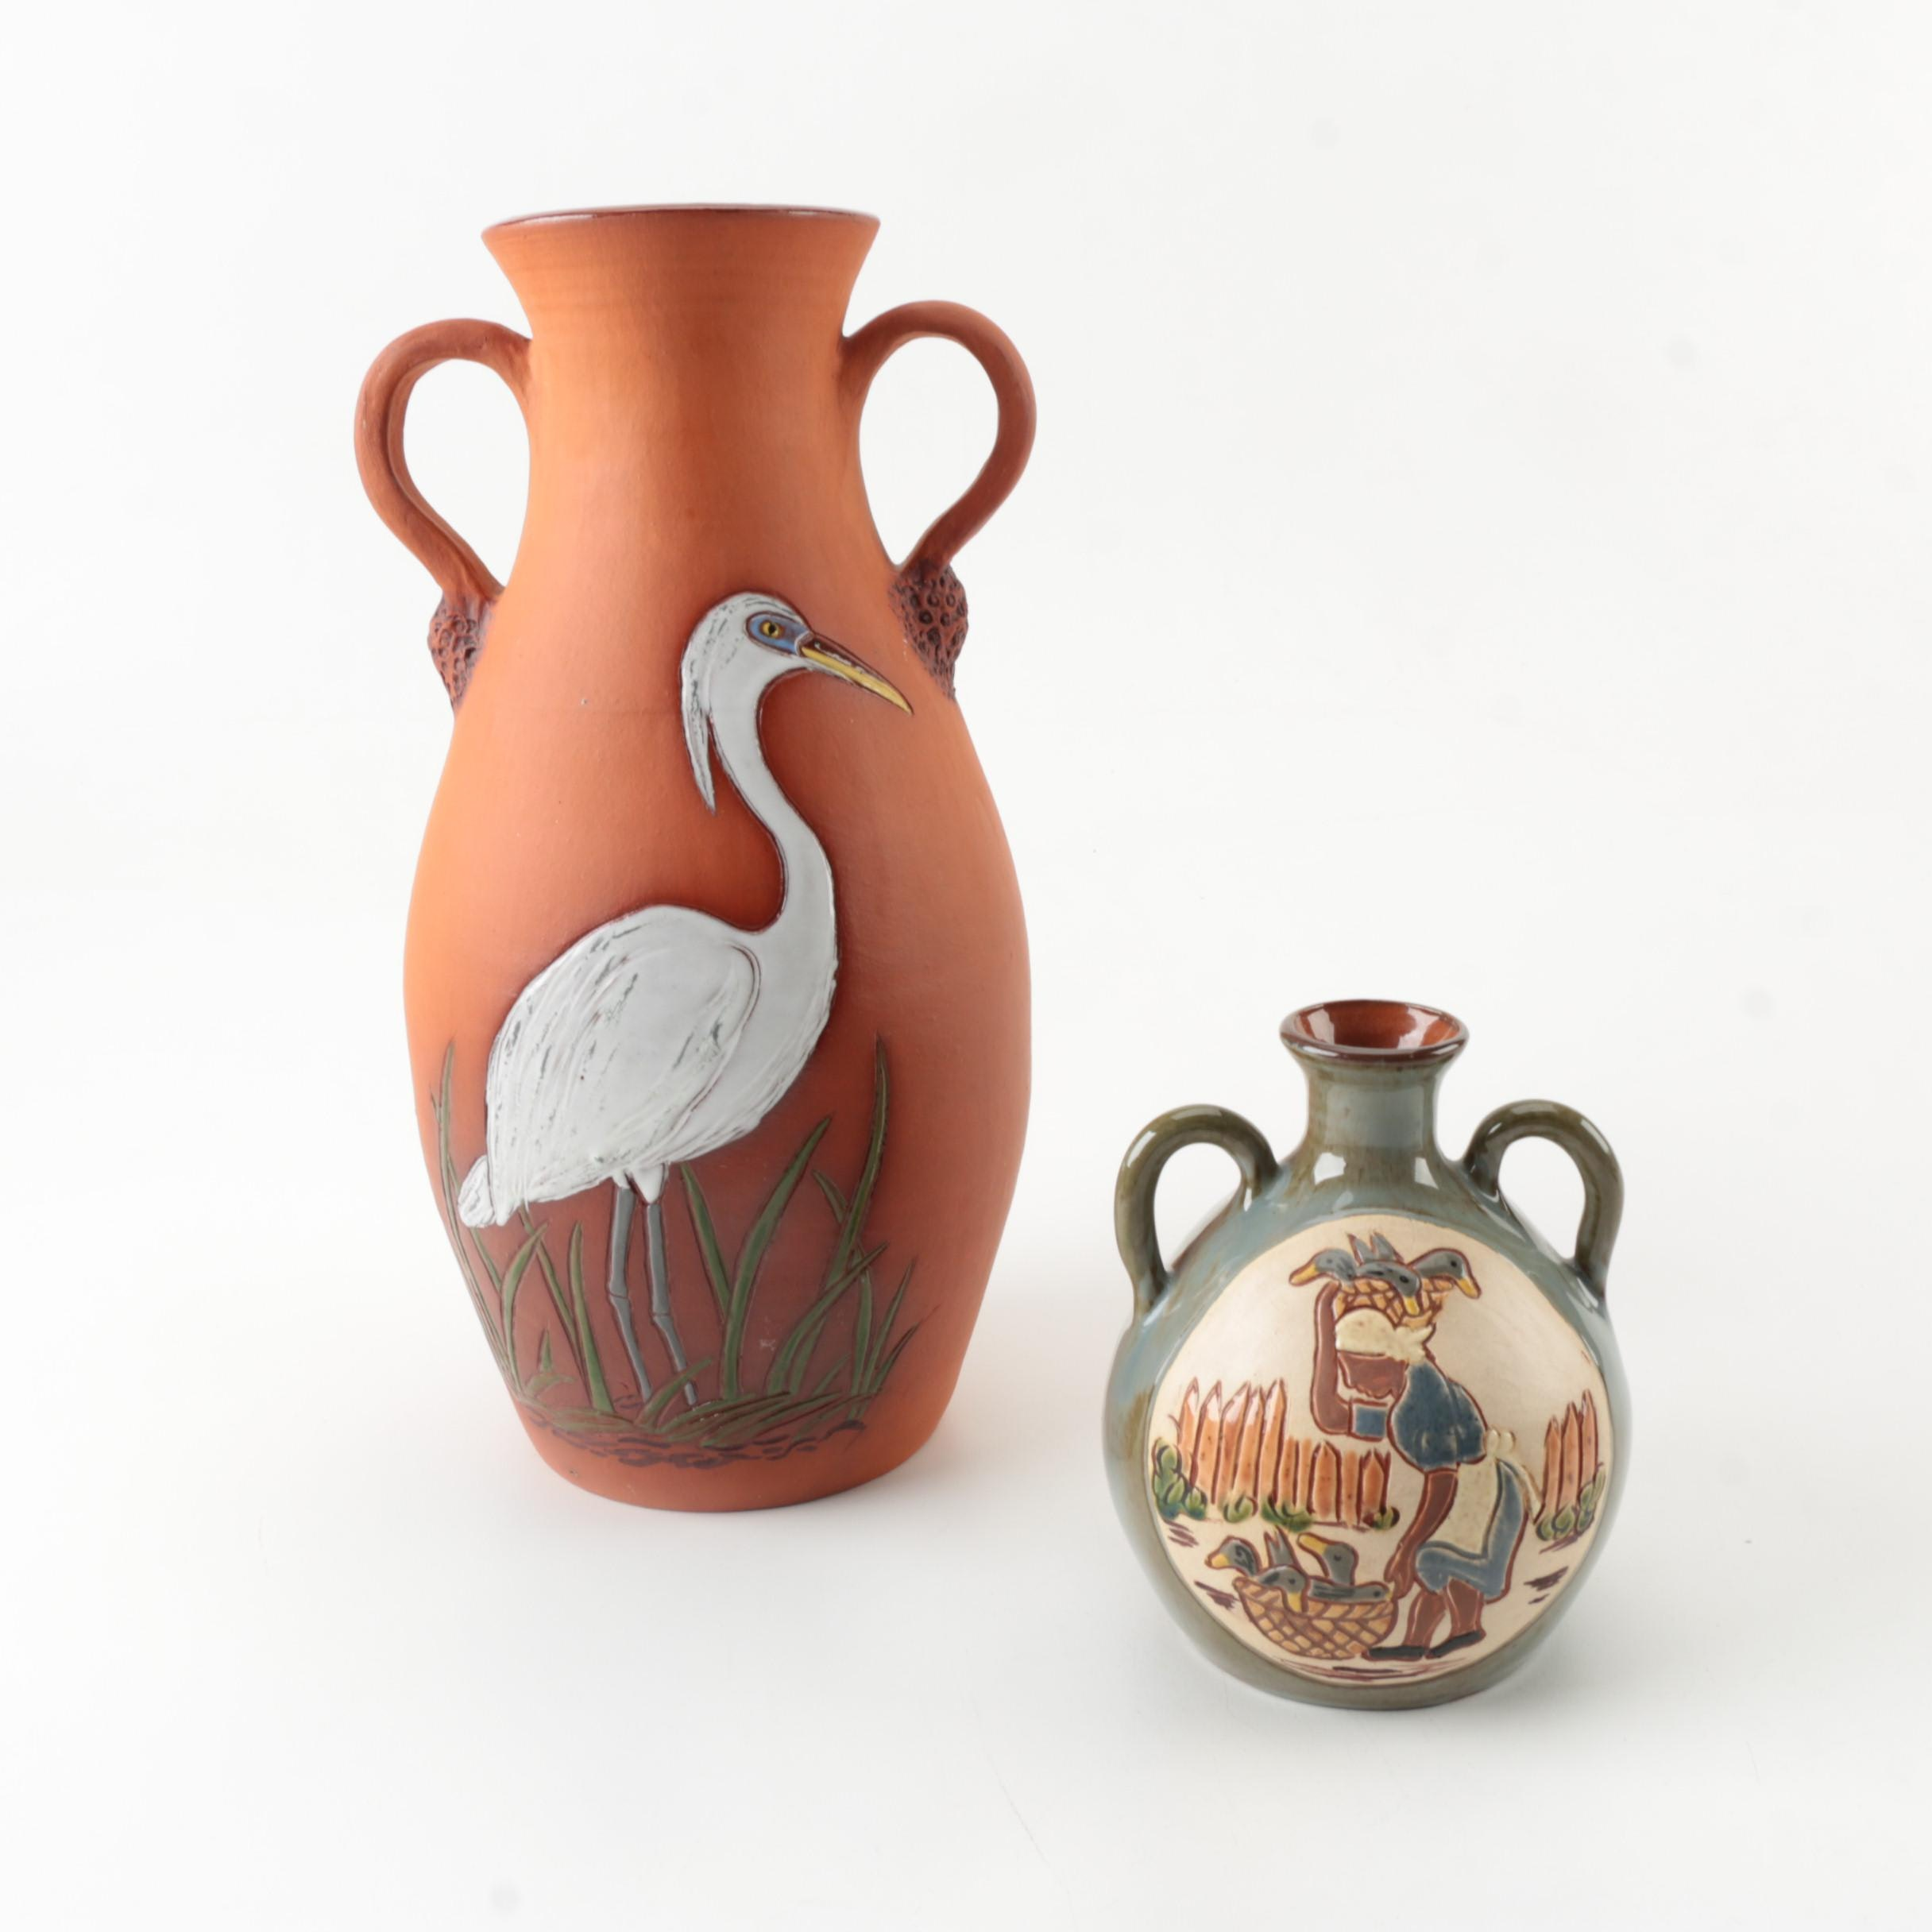 Lama Craft Guyana Signed Pottery Vases